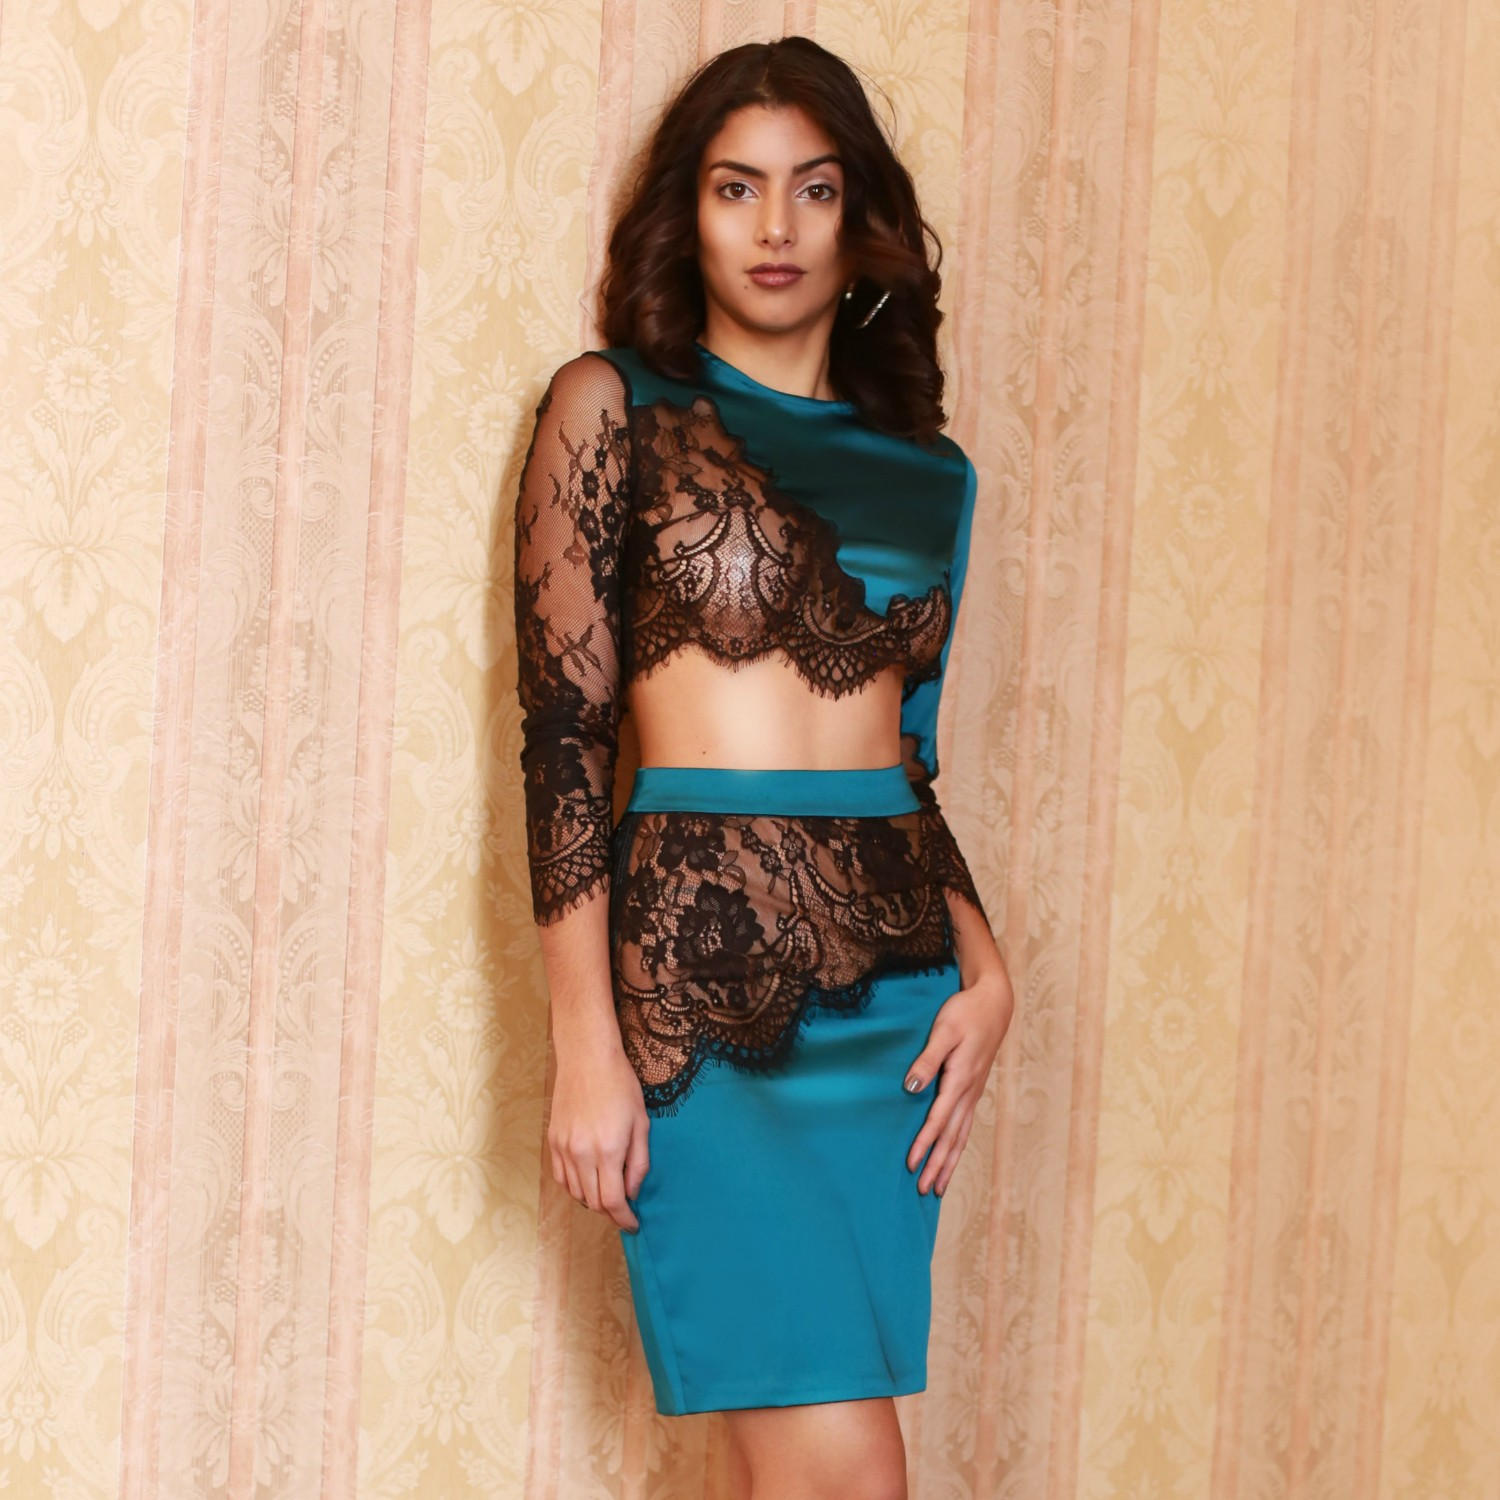 Turquoise Round Neck Long Sleeve 2 Piece Lace Transparent Party Bodycon Dress HI927-Turquoise